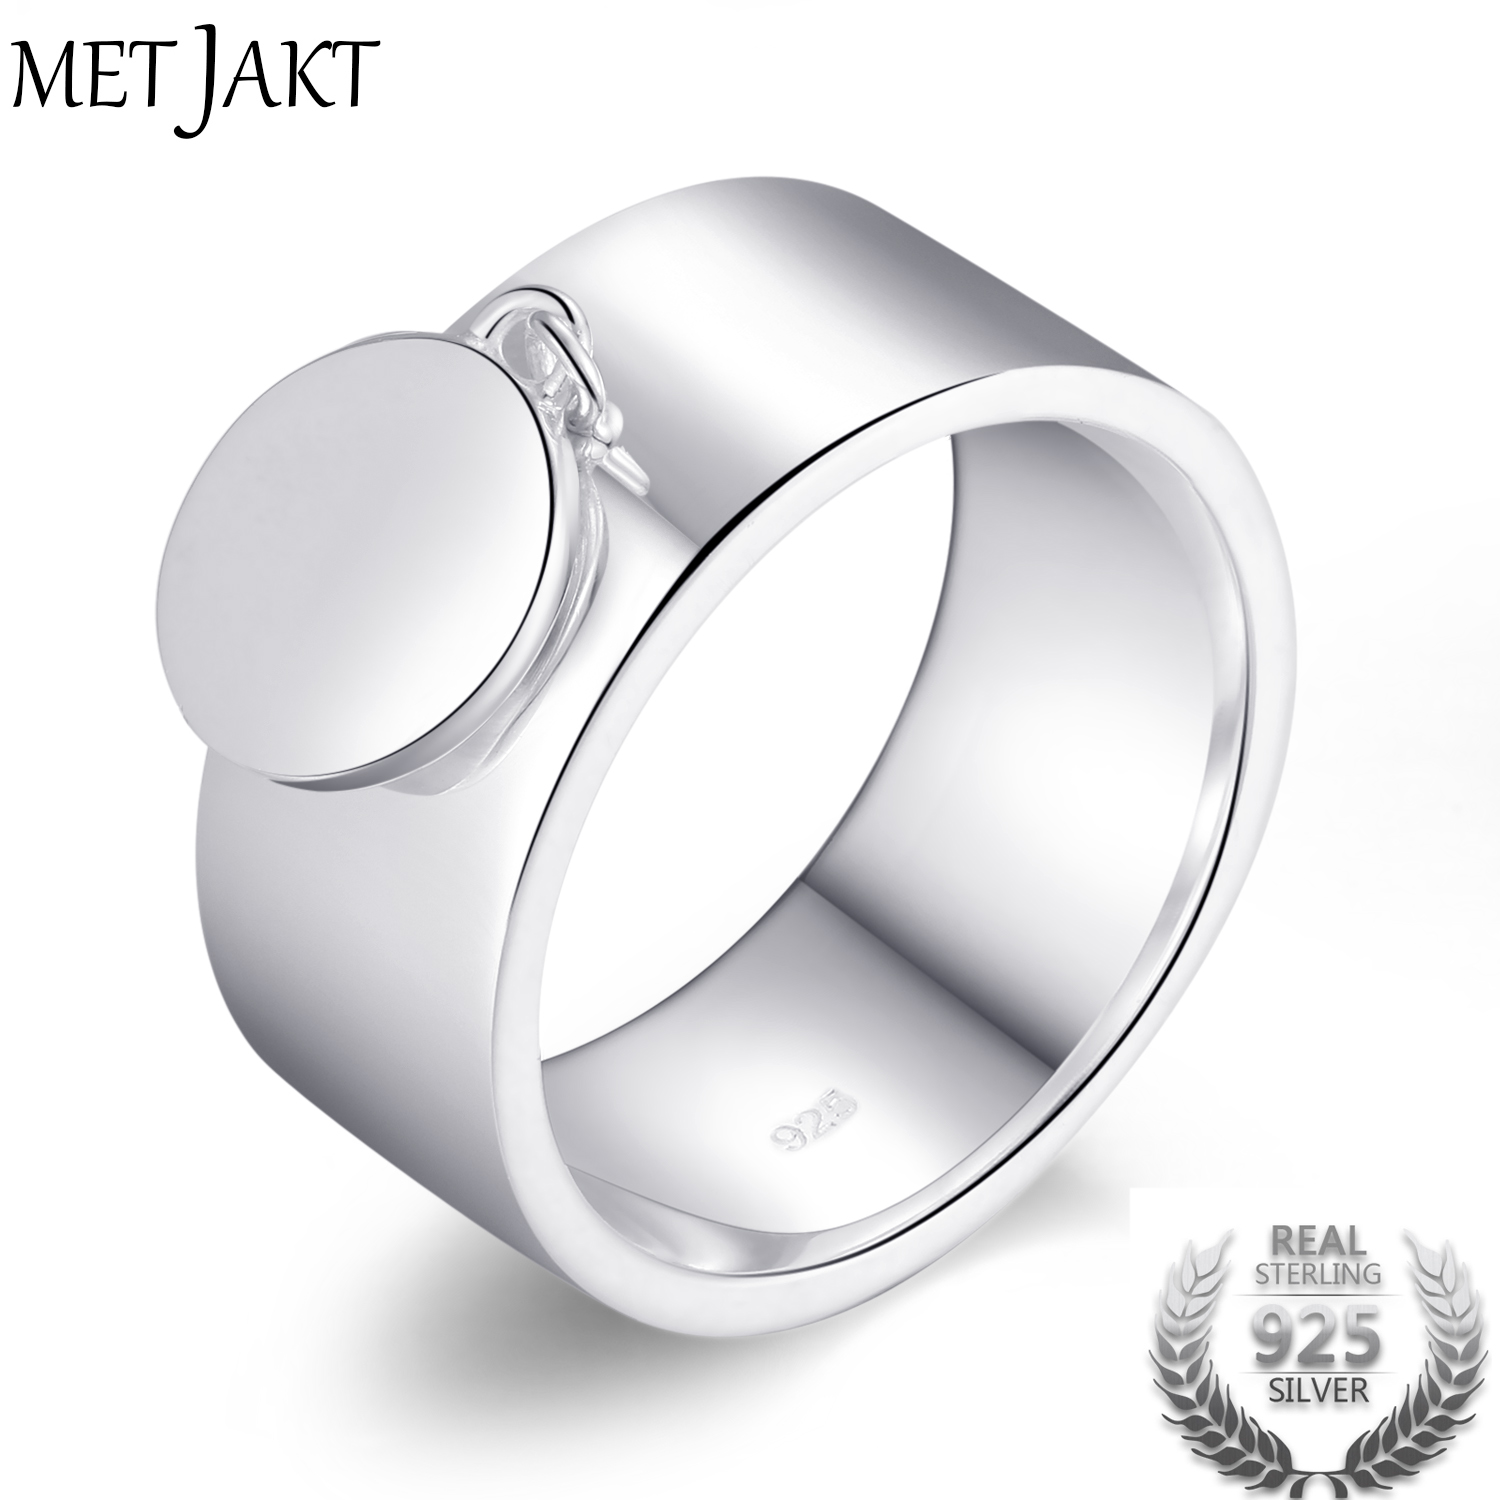 MetJakt Classic 925 Sterling Silver Round Charm Rings for Girlfriend Mother Friend Perfect Gift Pendant RingMetJakt Classic 925 Sterling Silver Round Charm Rings for Girlfriend Mother Friend Perfect Gift Pendant Ring